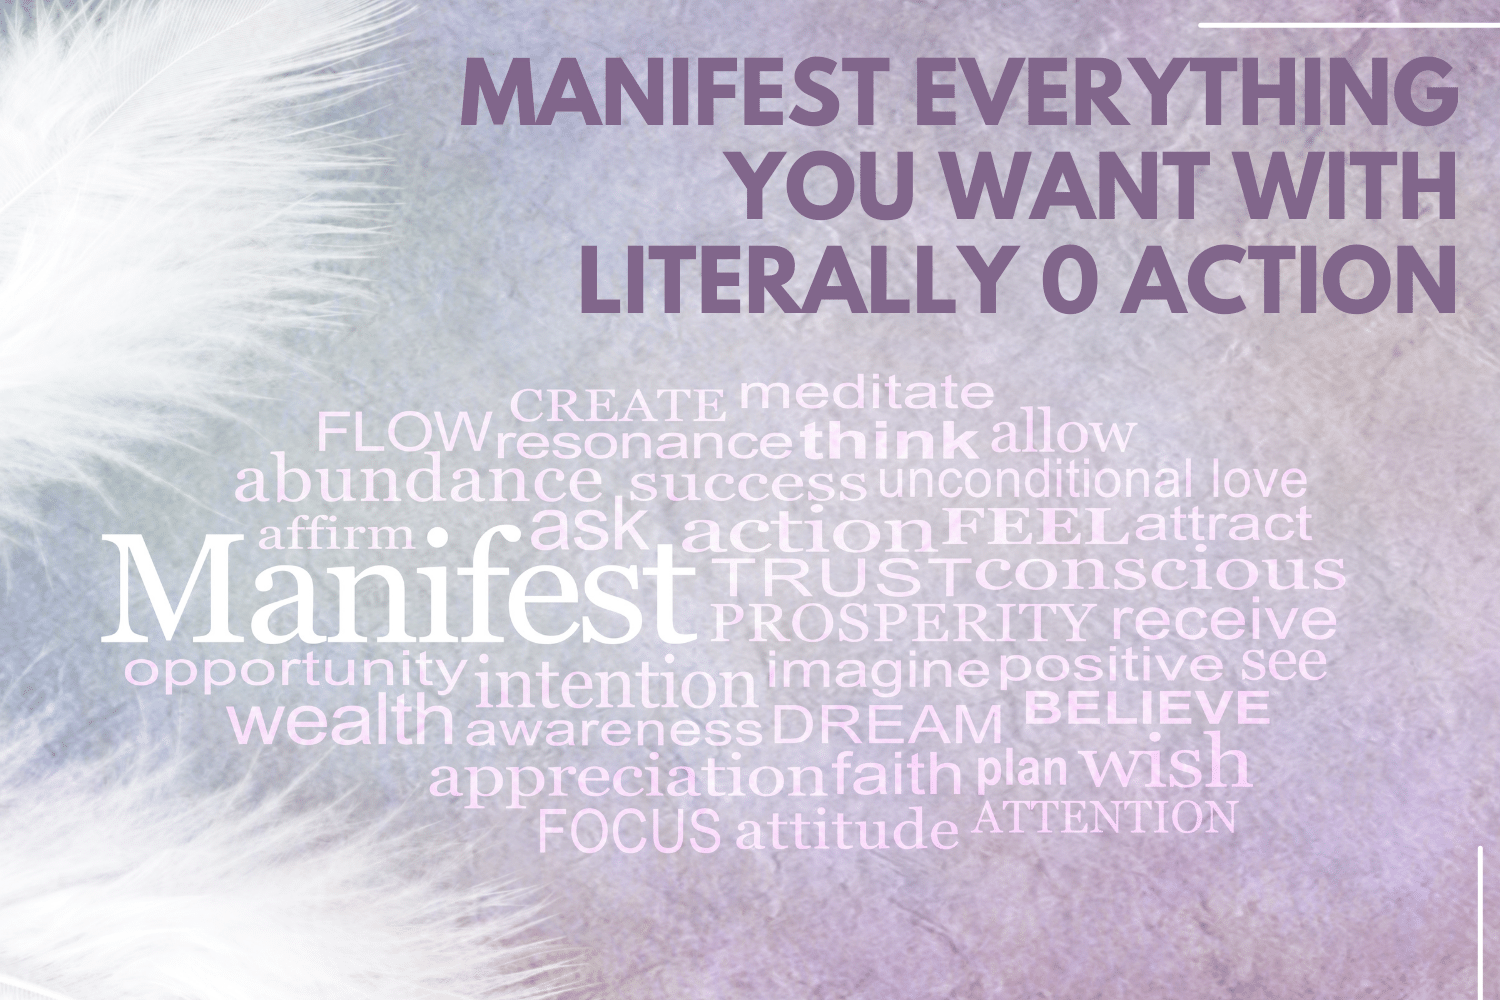 Manifest-Everything-you-Want-with-literally-0-Action